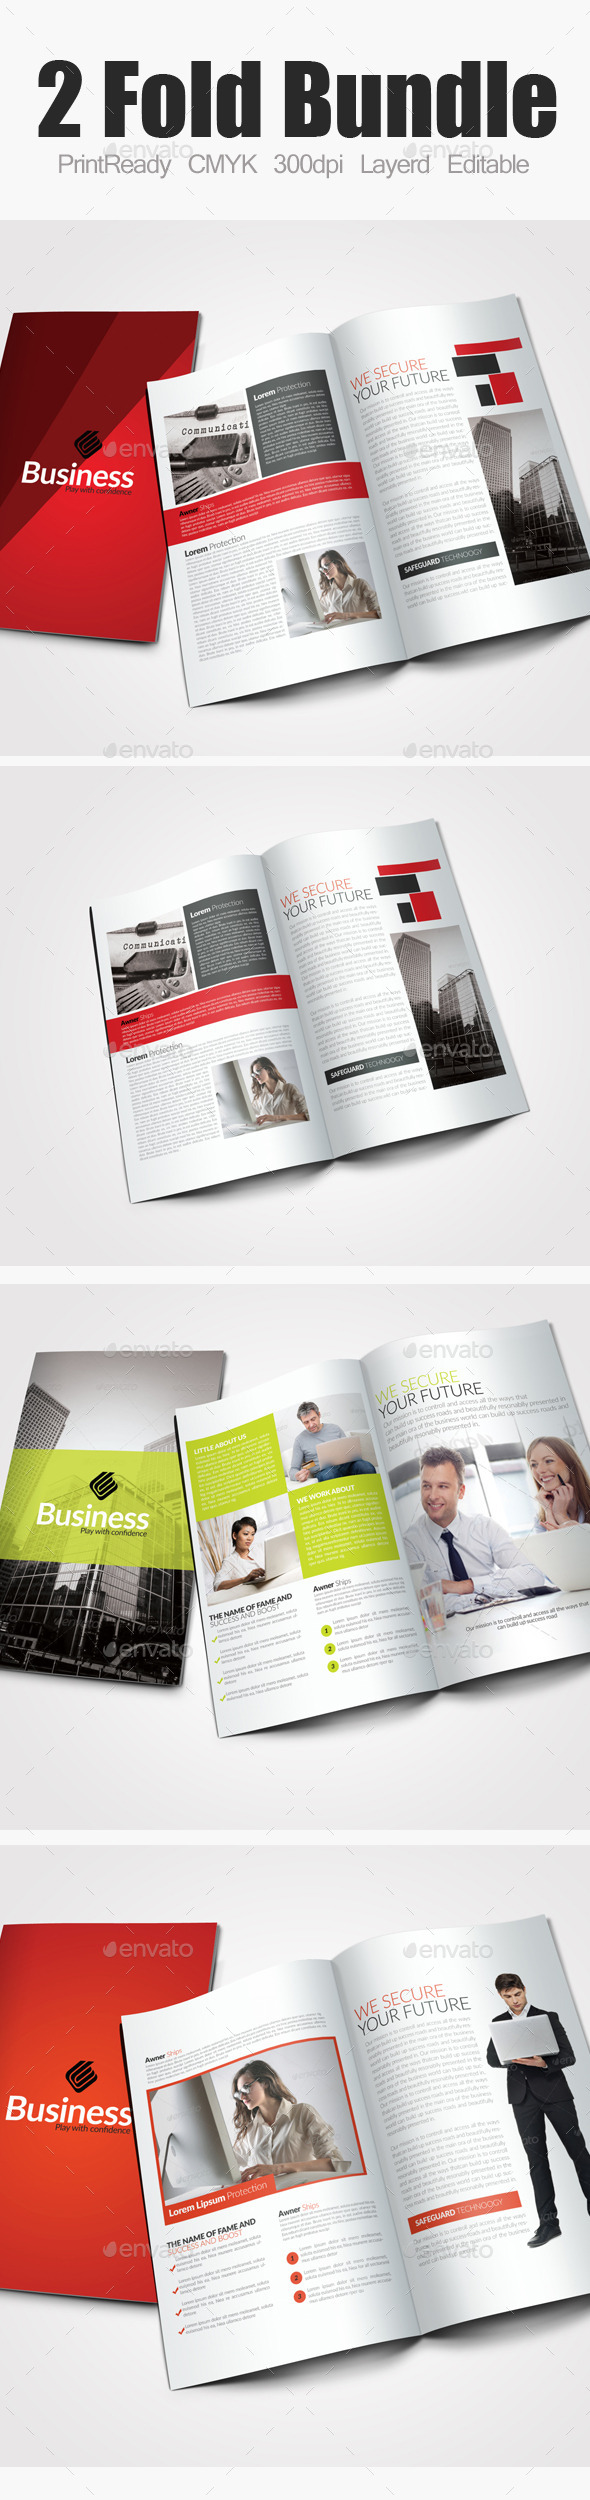 GraphicRiver Bi Fold Business Bundle 9189826